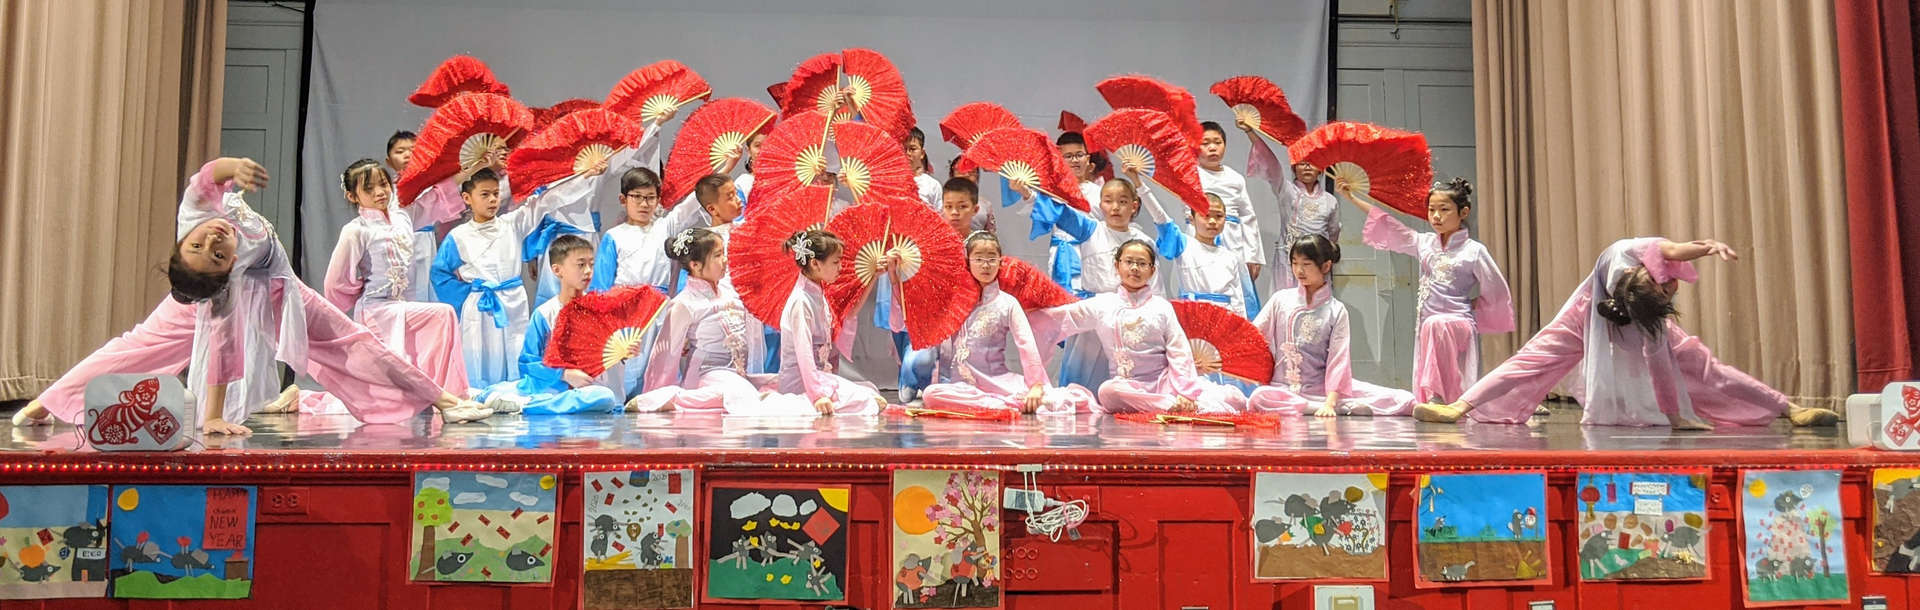 Ms. Zhong's class performs a fan dance.